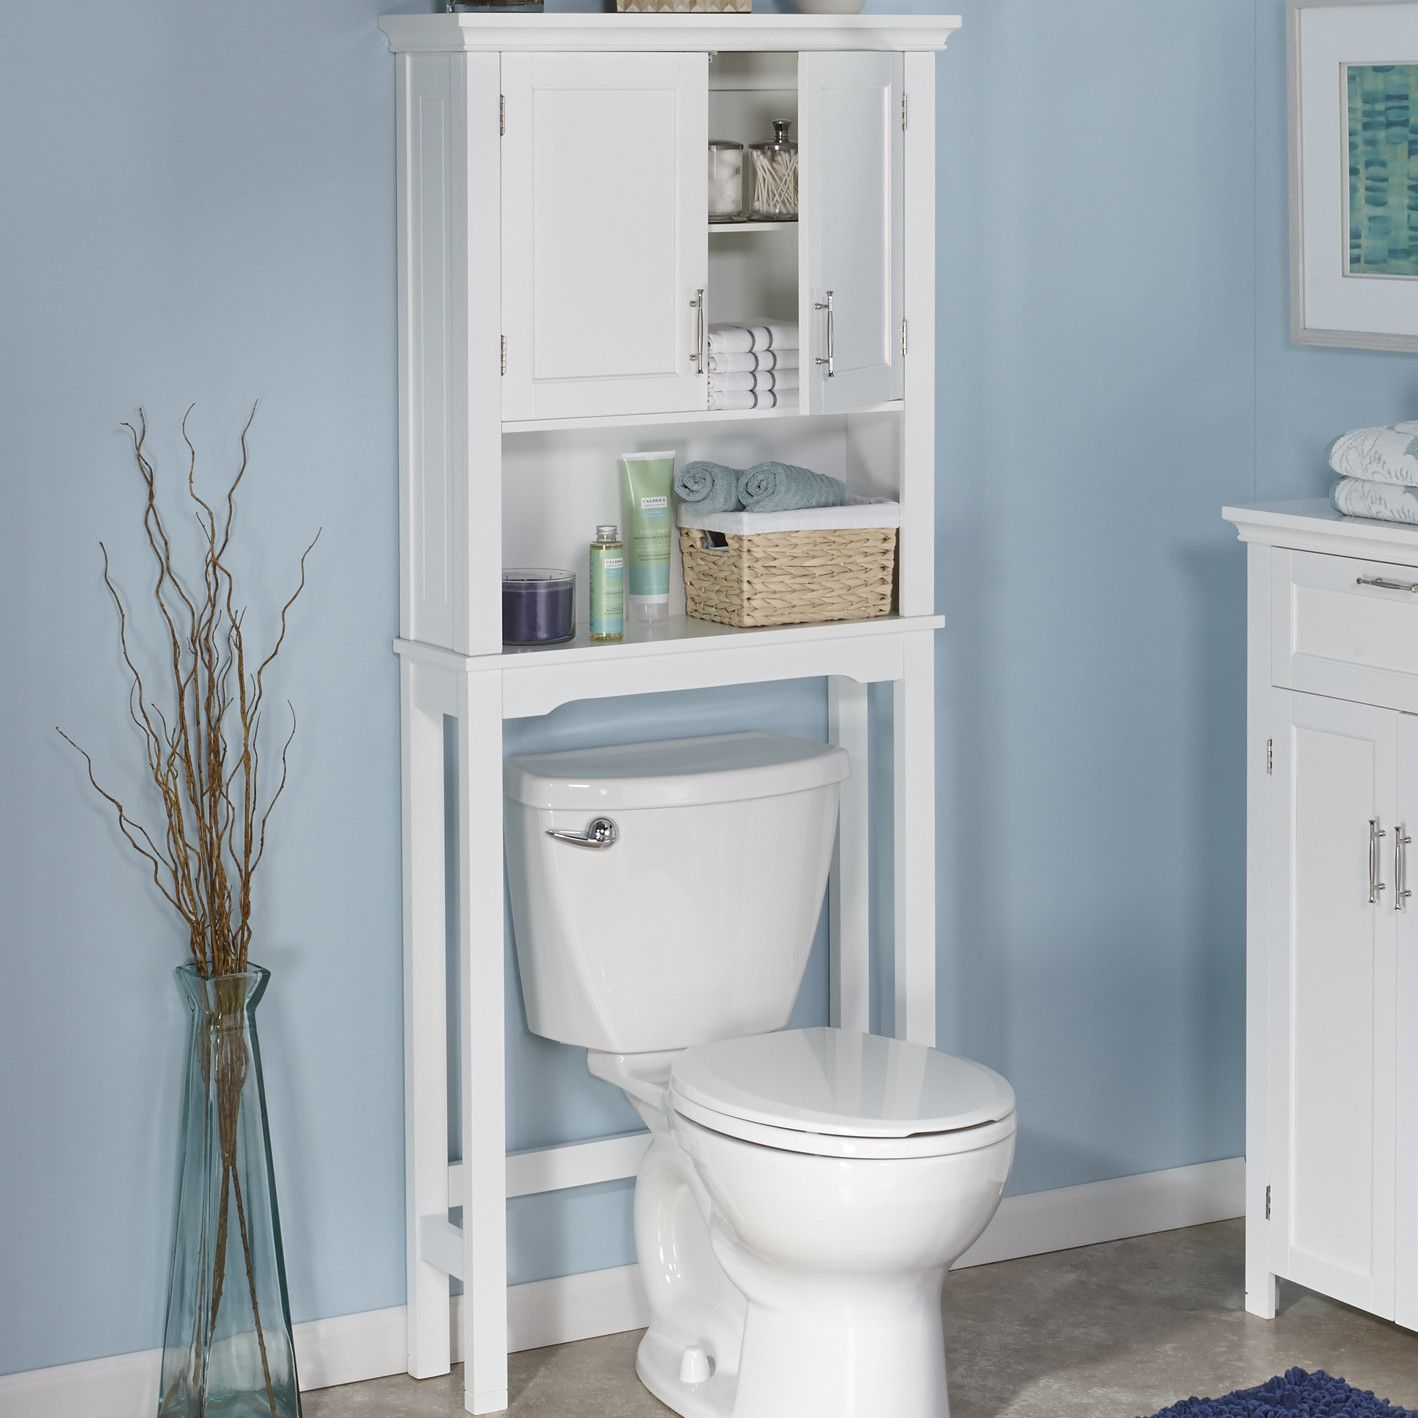 Shop Wayfair for Over-the-Toilet Storage to match every style and ...